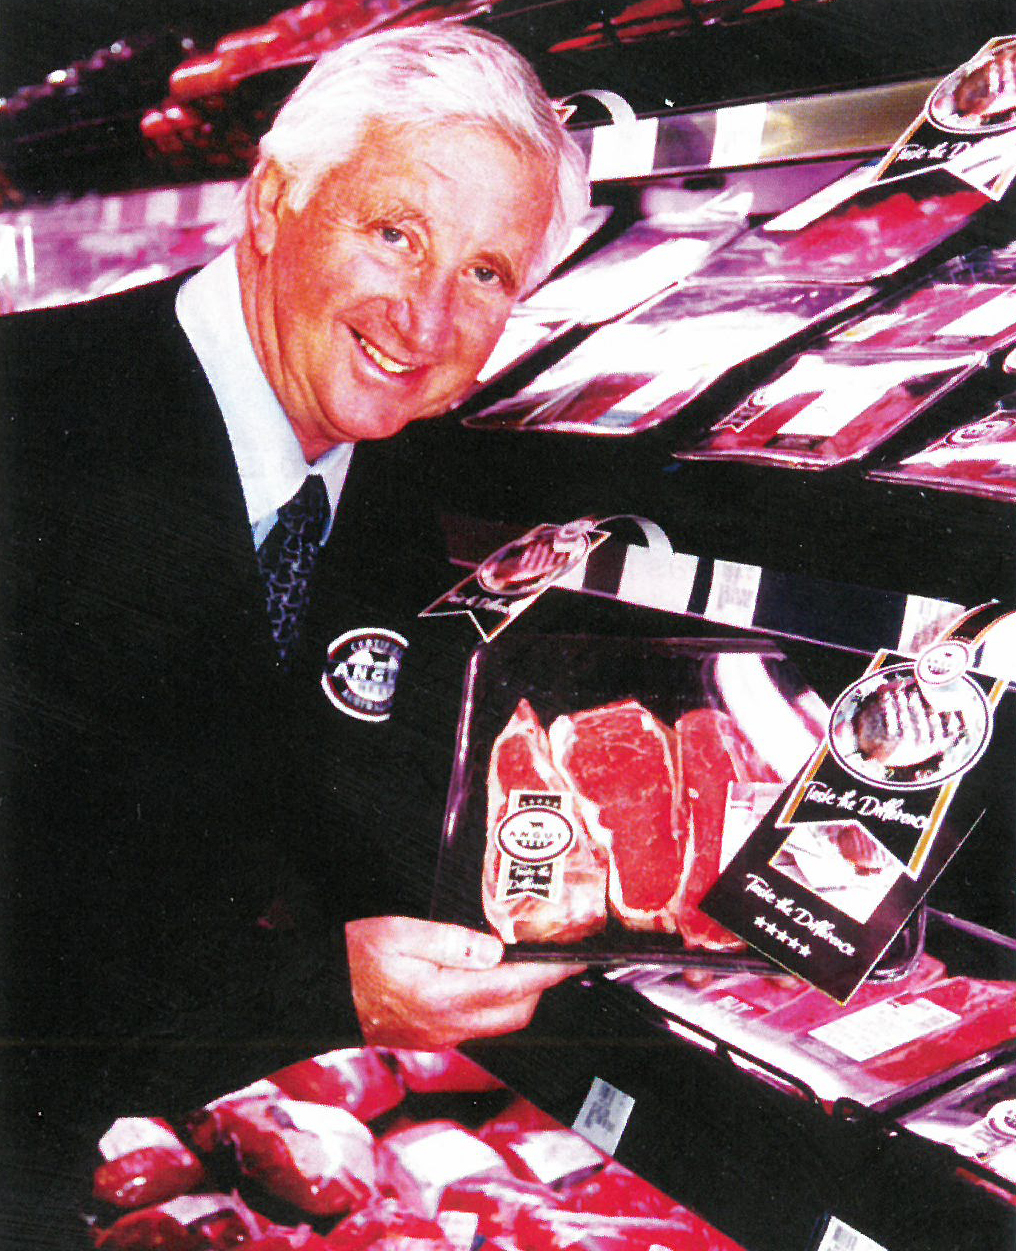 CAABs Chairman Michael Pointer with CAAB meat in Coles Supermarket, Angus Australian Journal 2004